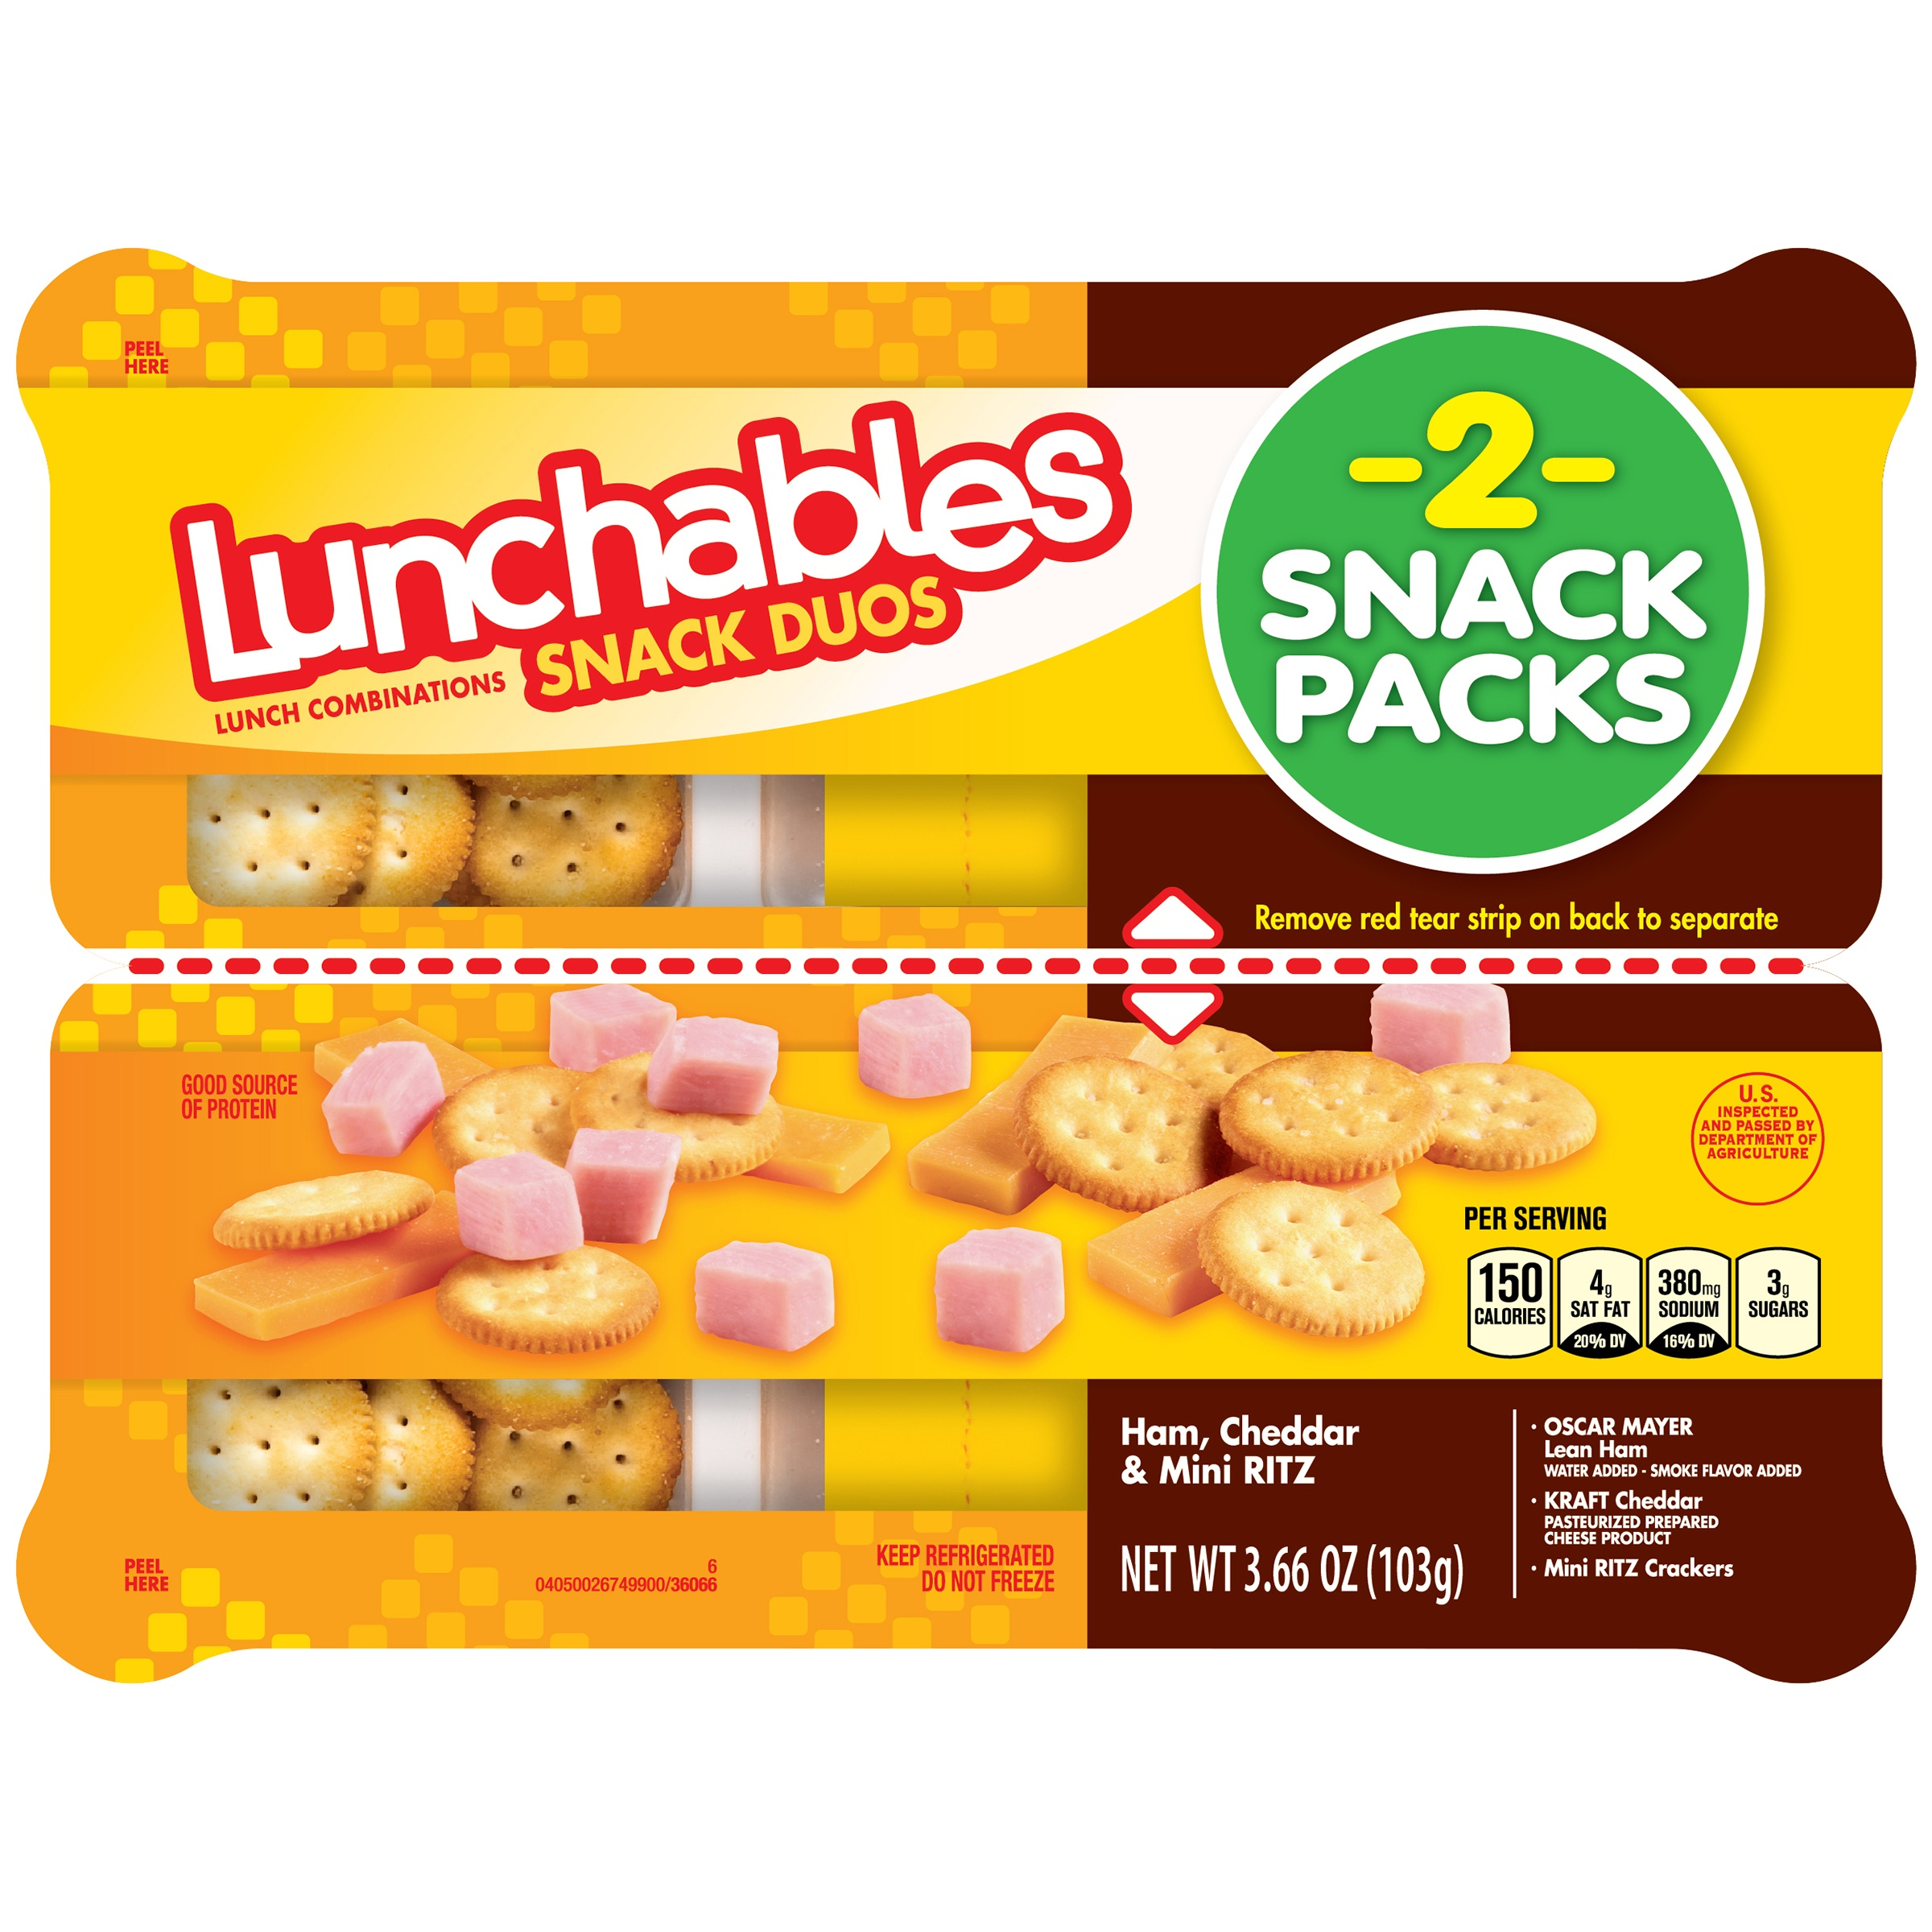 Lunchables Snack Duos Ham, Cheddar & Mini Ritz Snack Combinations, 2 count, 3.66 oz